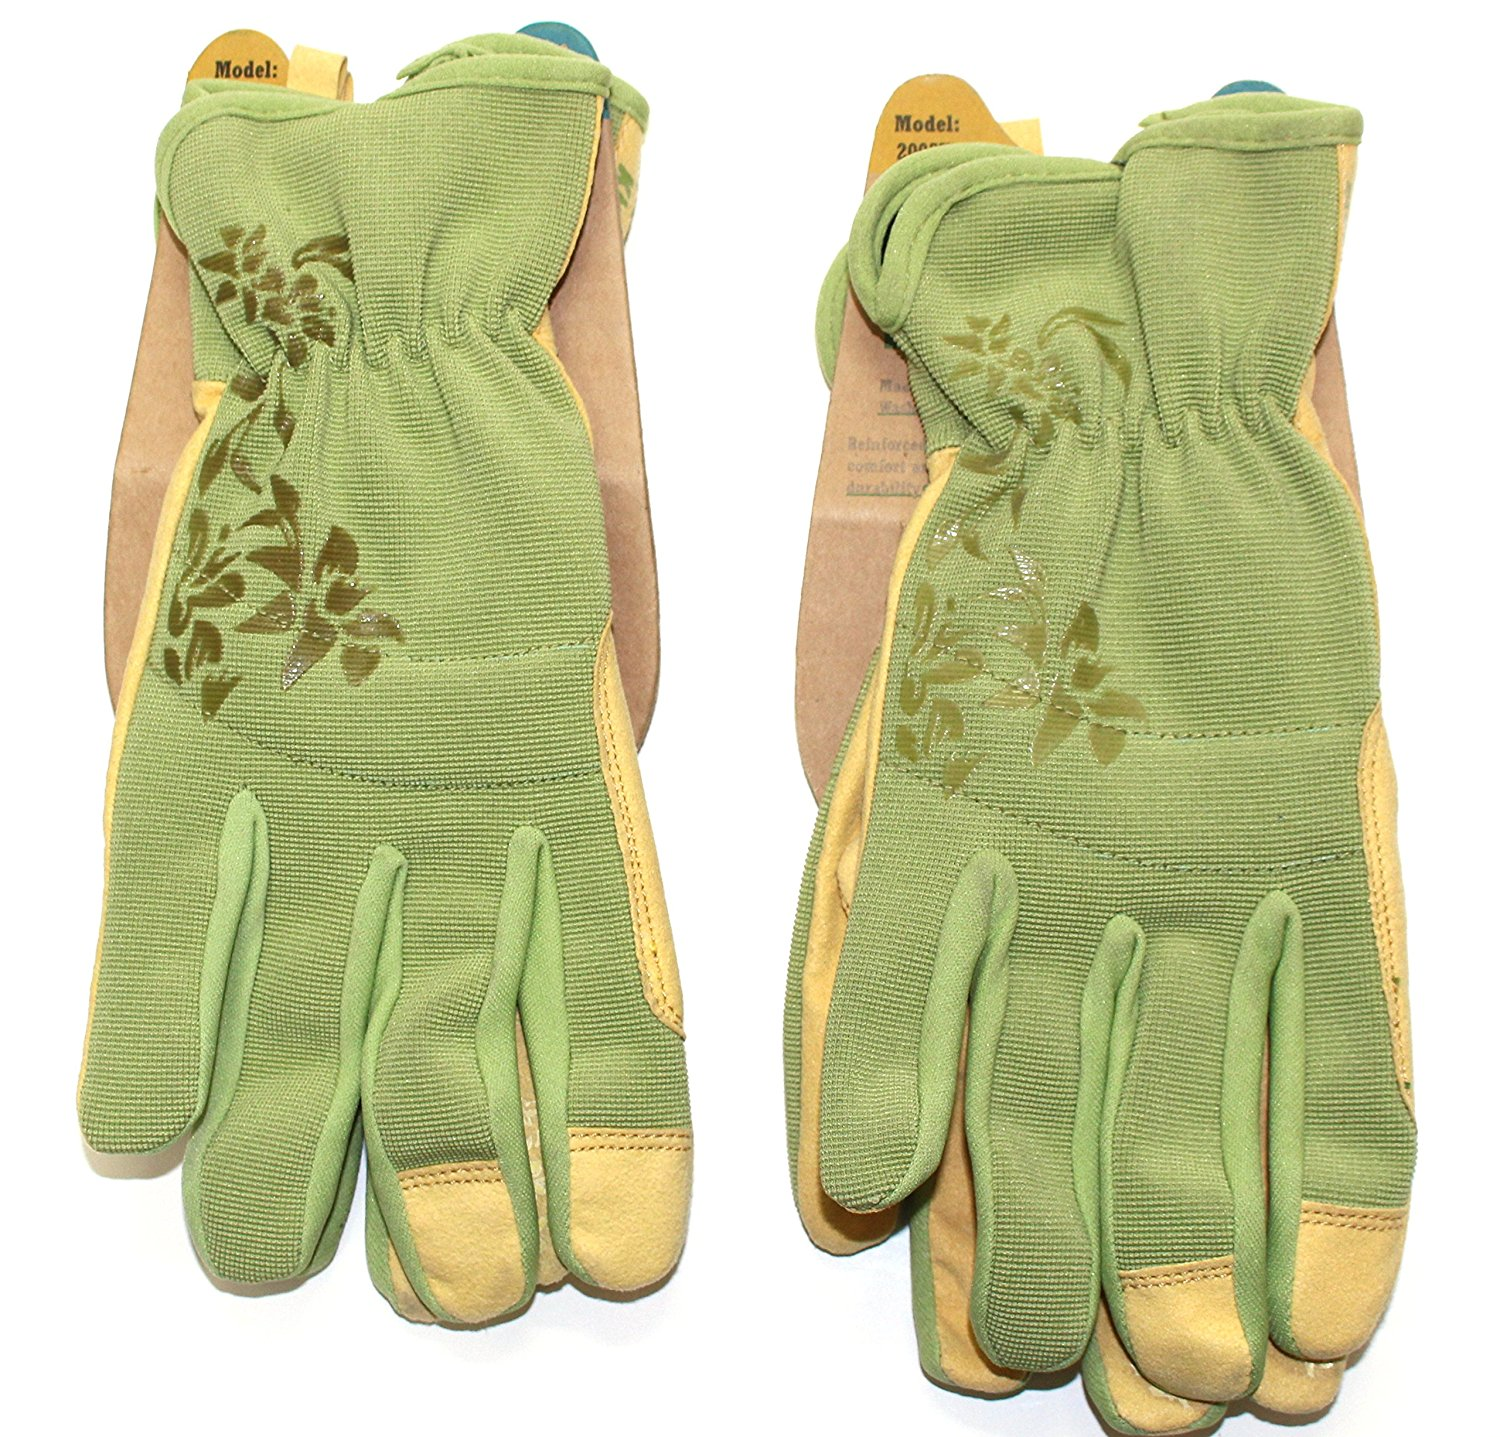 Kinco 2005W-L Women's Green Synthetic Leather Gloves - Ideal for Gardening and Yard Work - Silicone on Finger Tips for Added Grip (2-Pack) (Size: Large)